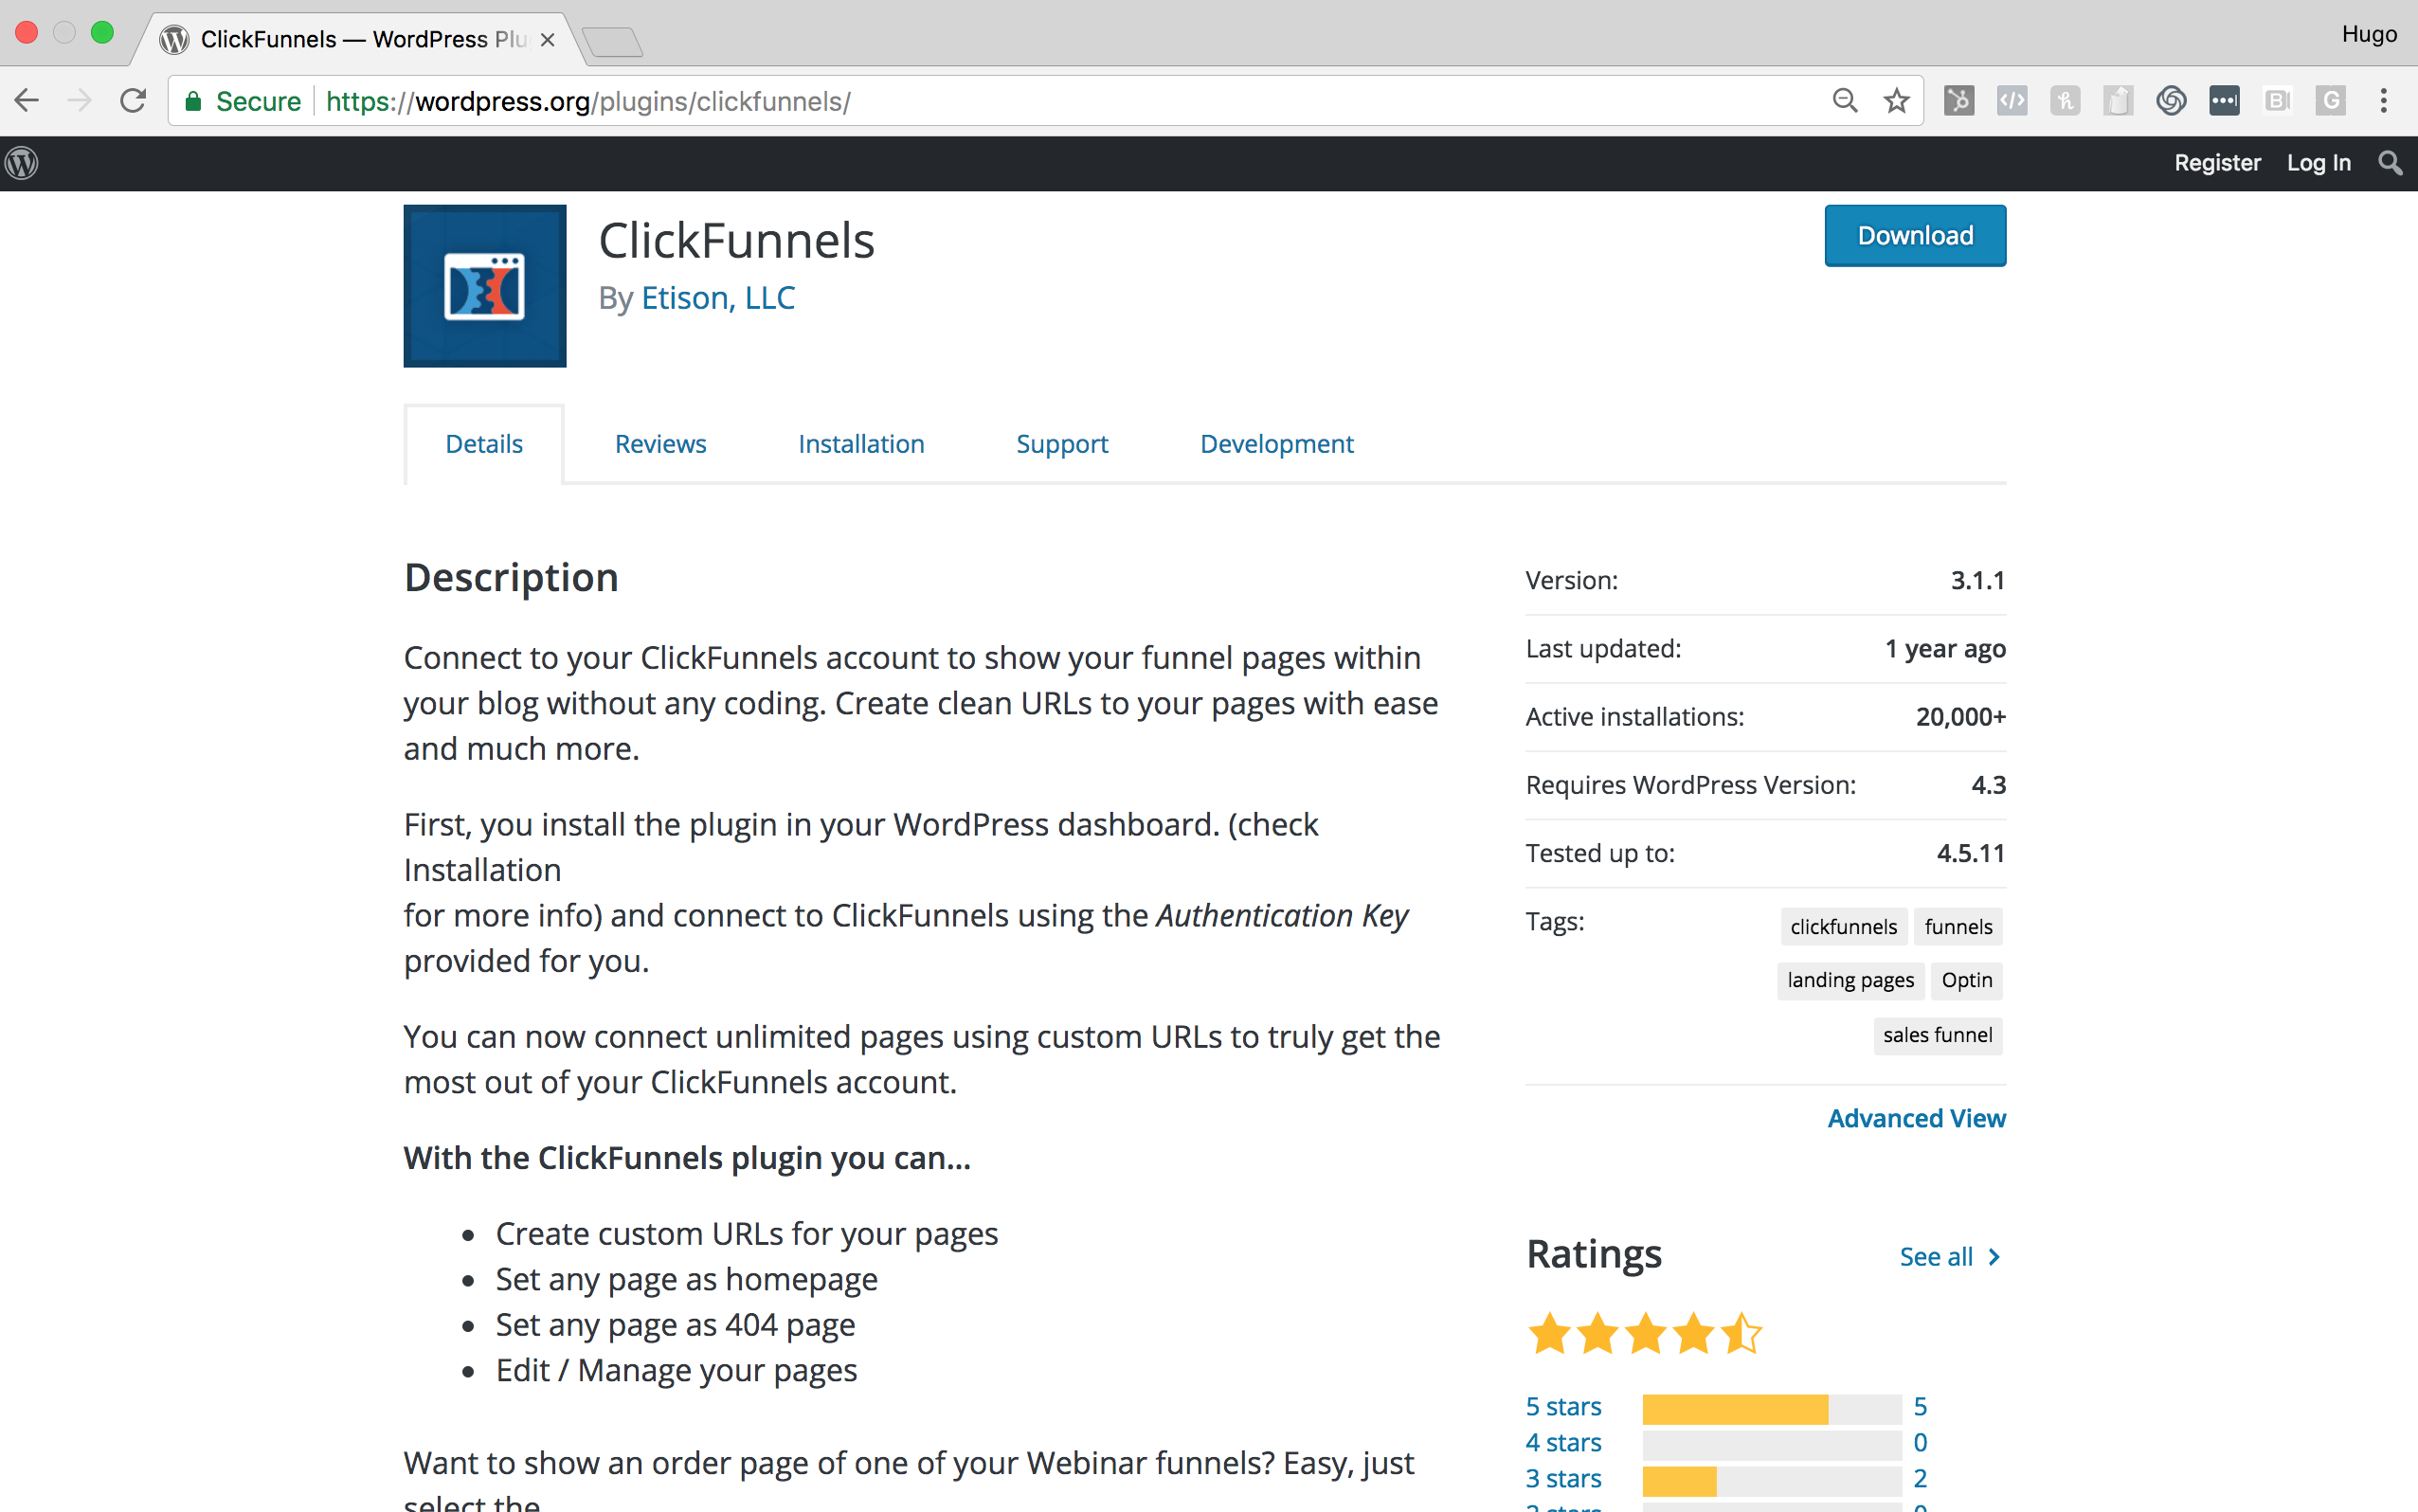 How To Add Favicon On Clickfunnels